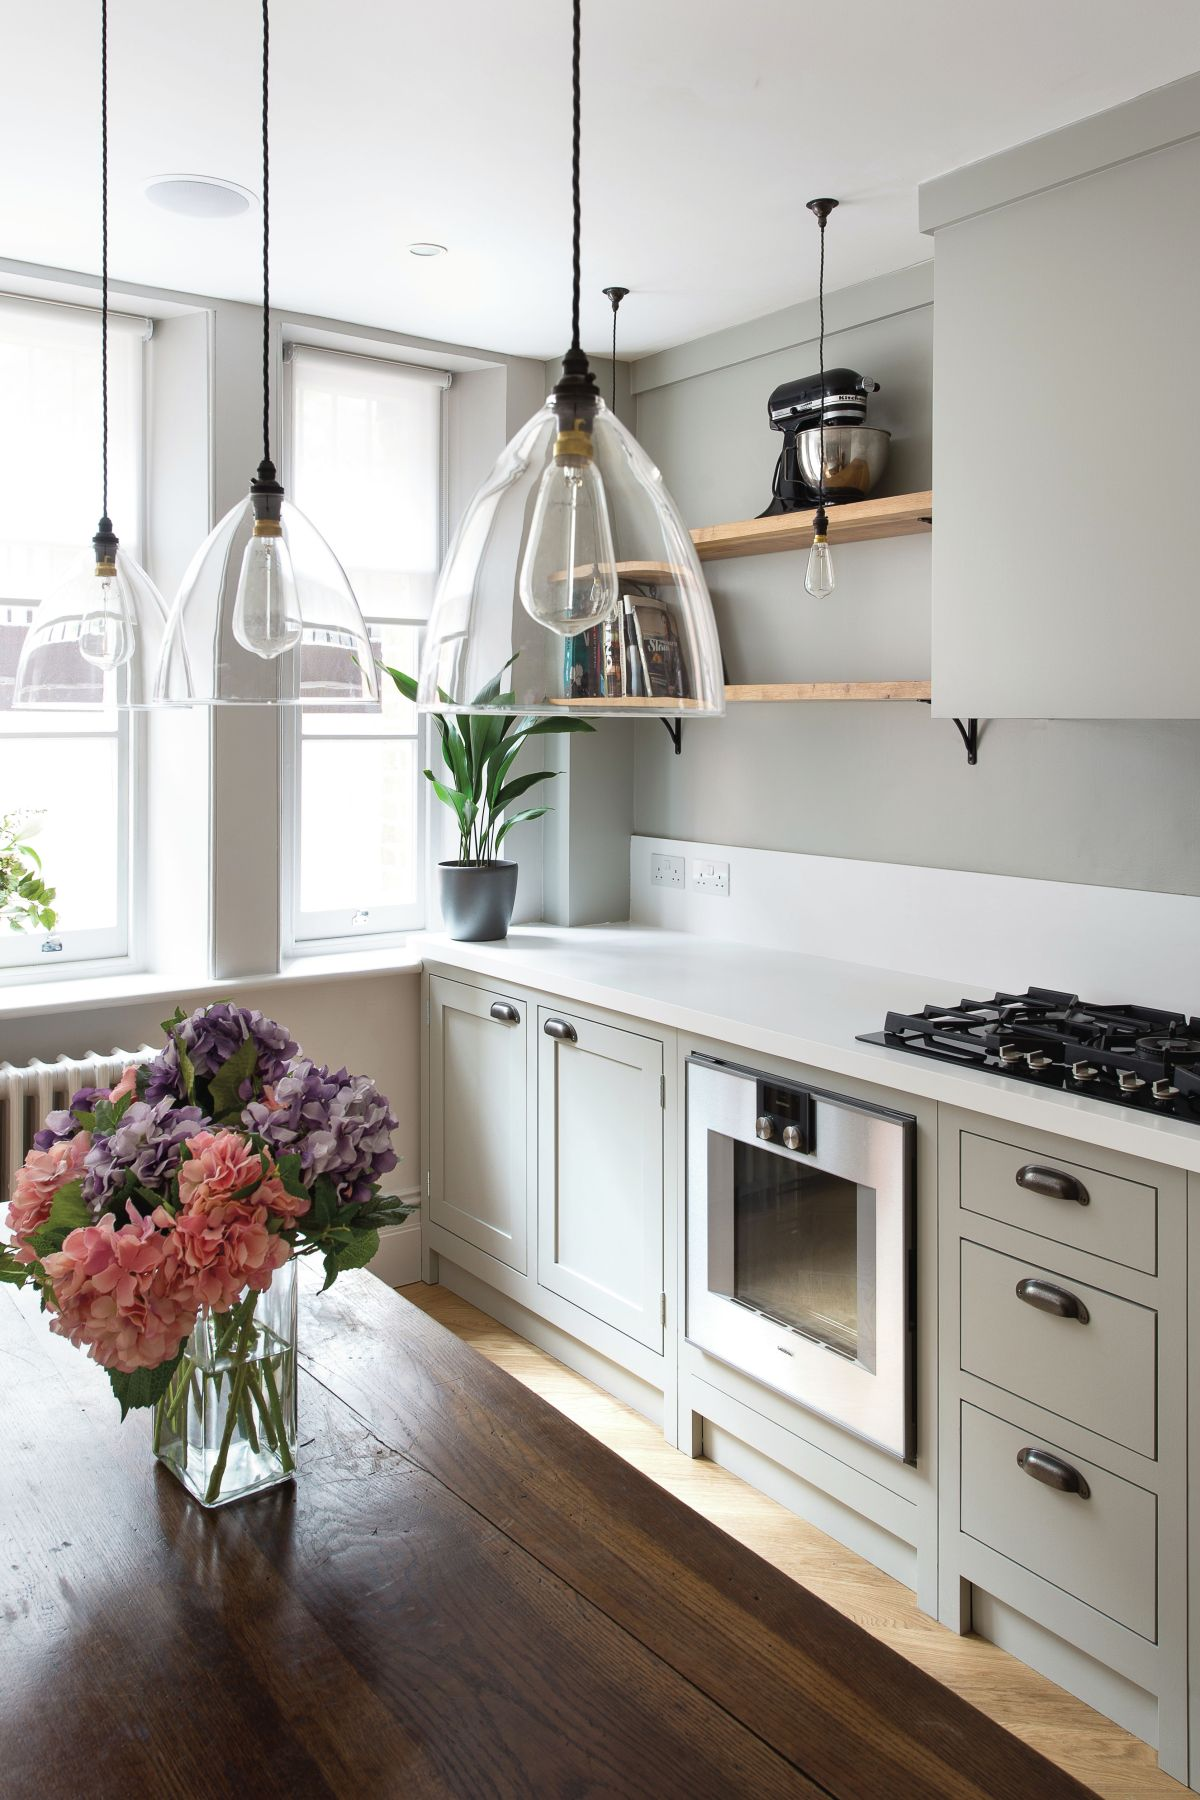 B&q Kitchen Design Jobs Kitchens On A Budget 16 Ways To Design A Stylish Space Real Homes